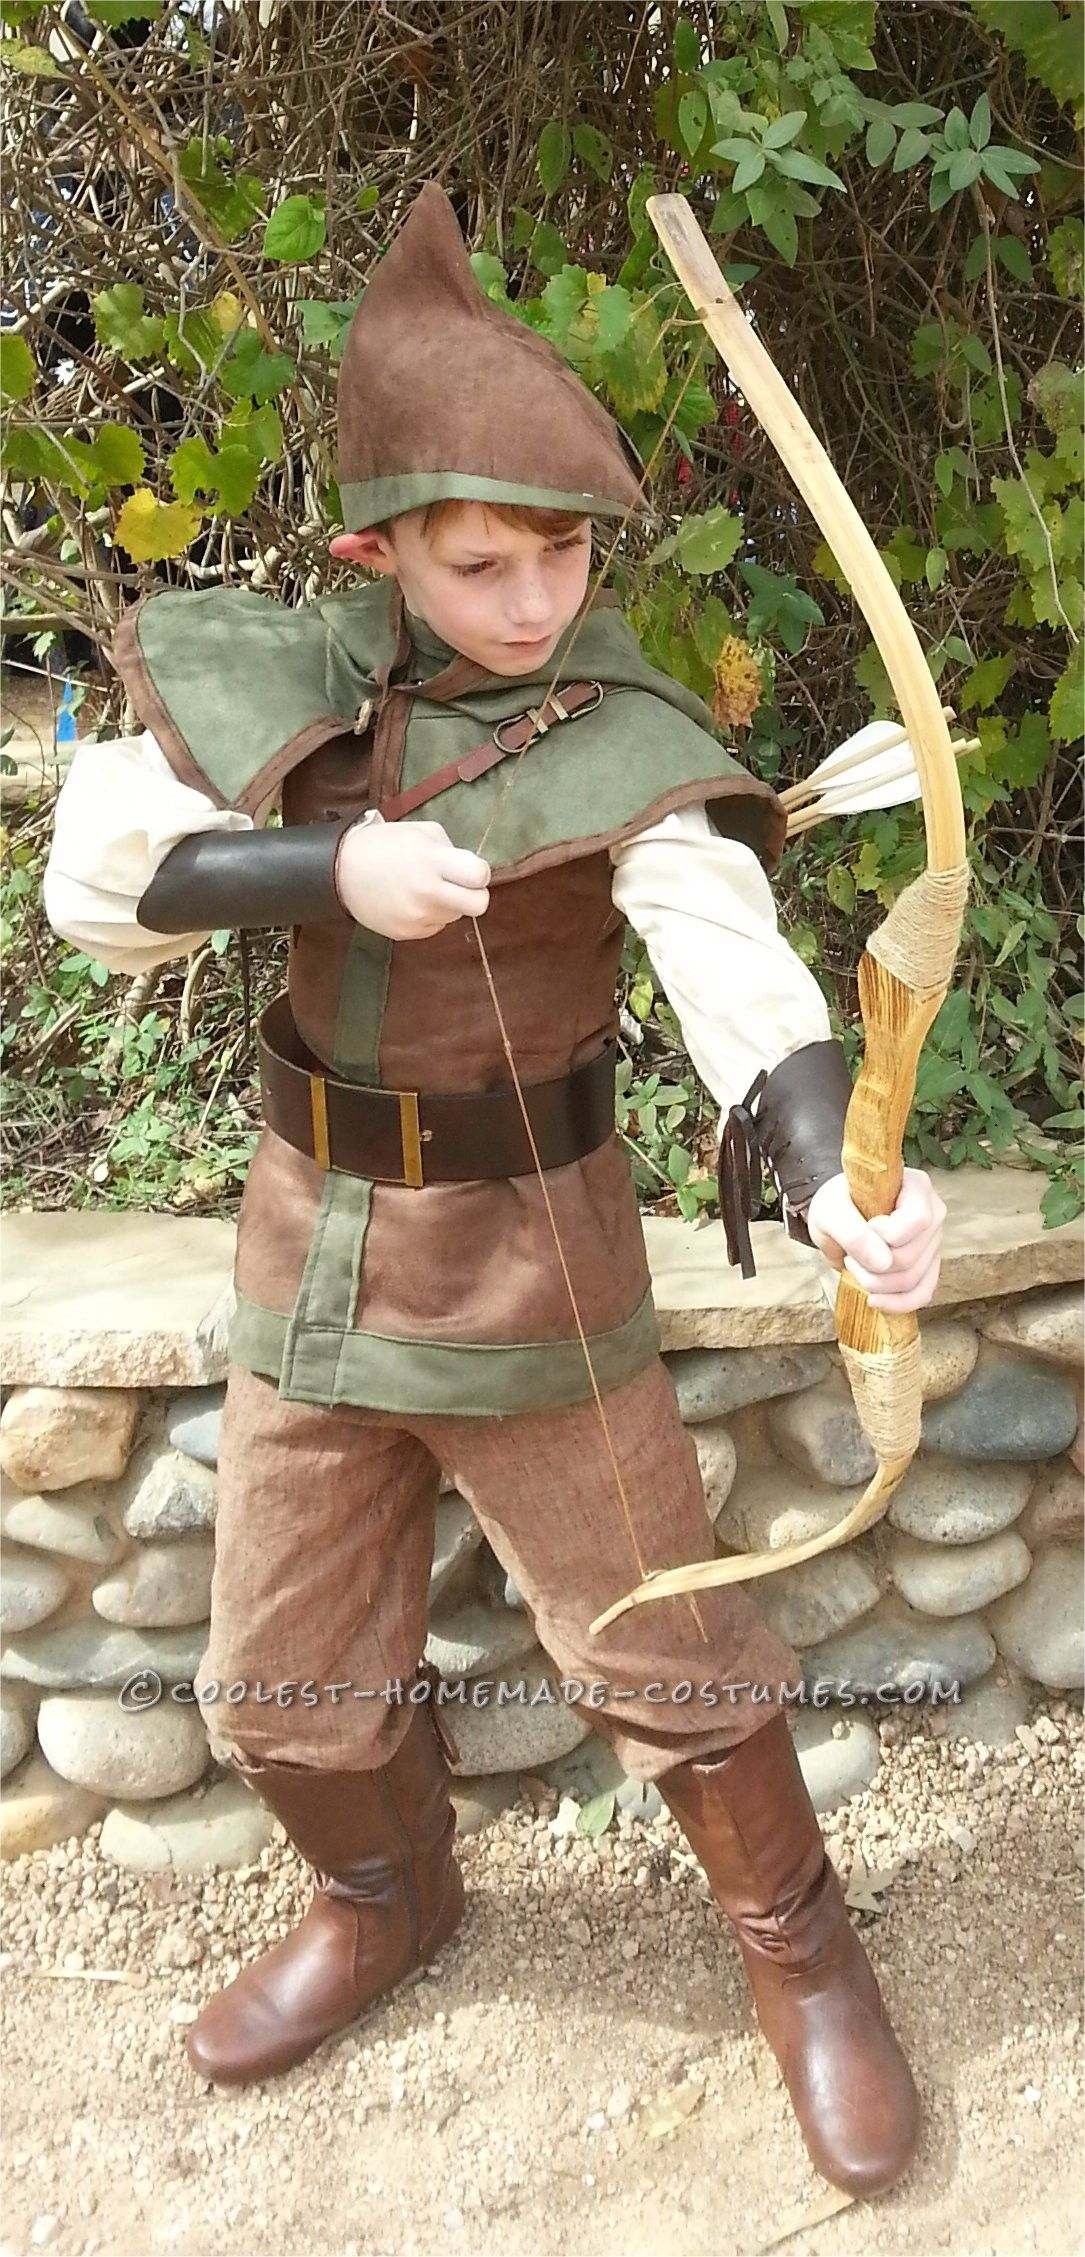 coolest robin hood prince of thieves costume coolest homemade costumes pinterest kost m. Black Bedroom Furniture Sets. Home Design Ideas